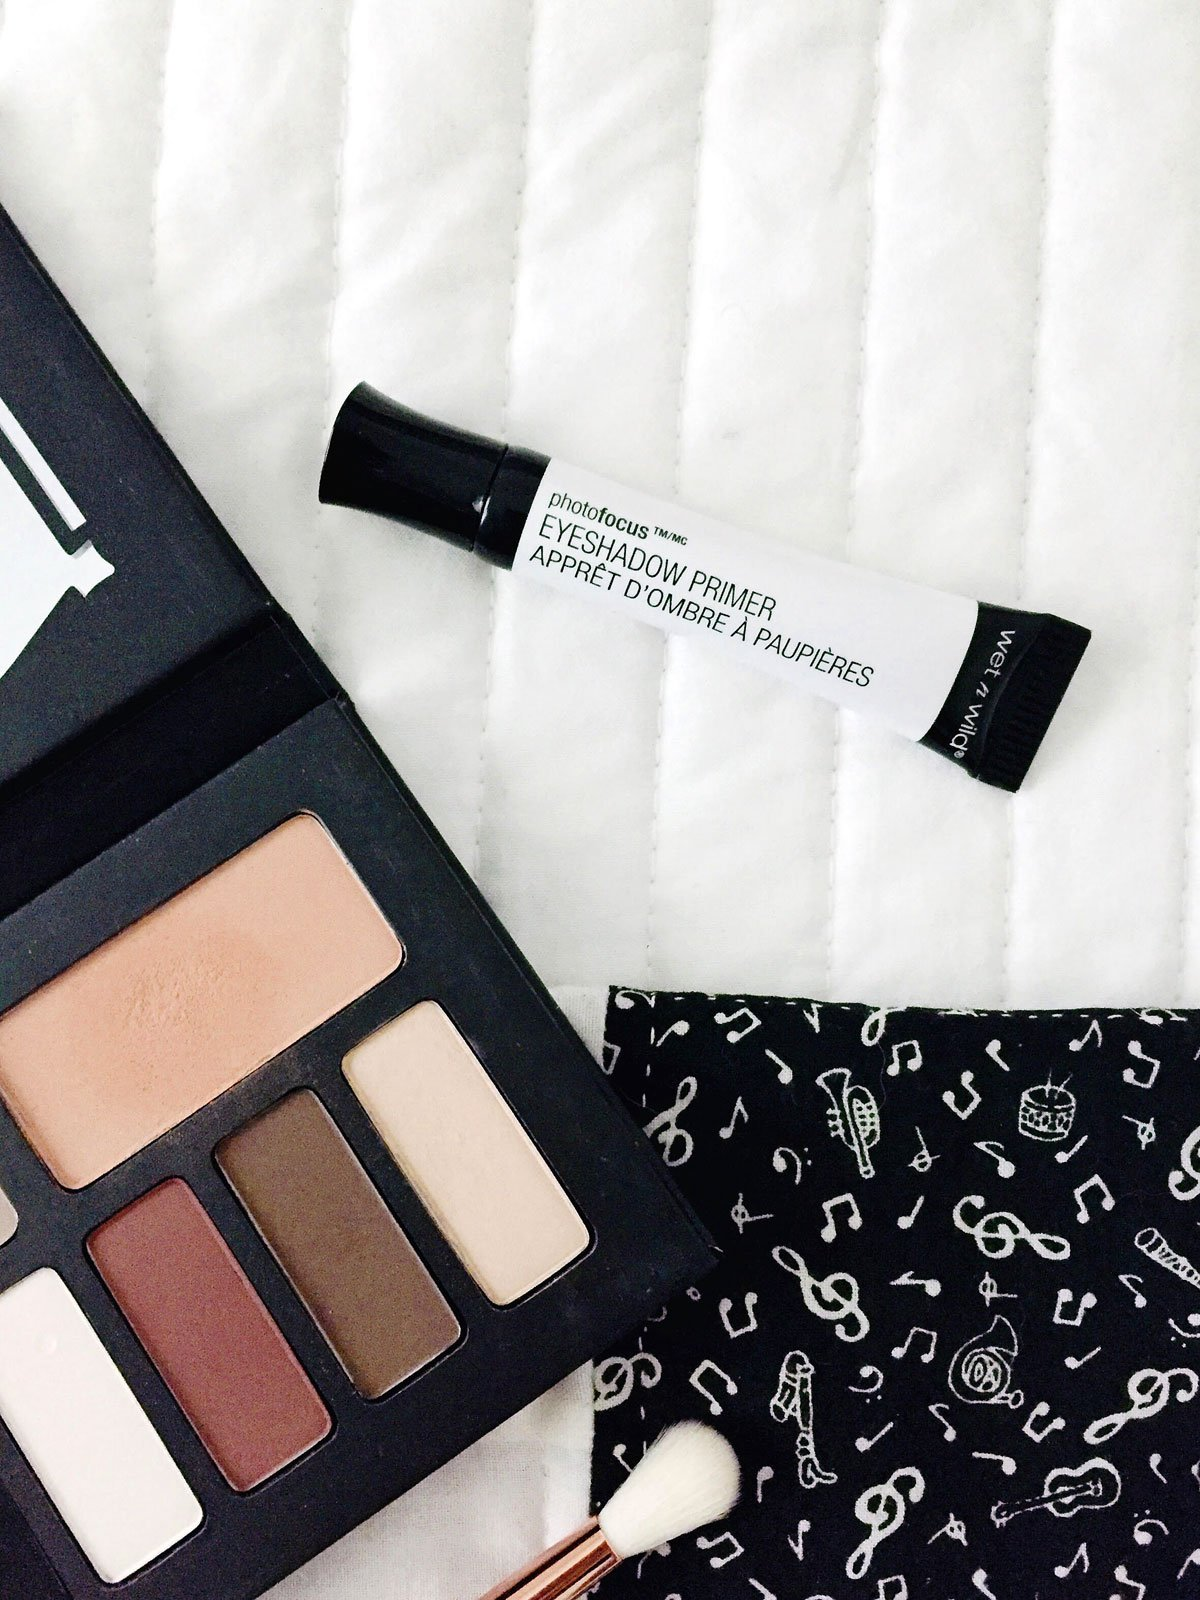 Wet n Wild Photo Focus Eyshadow Primer review